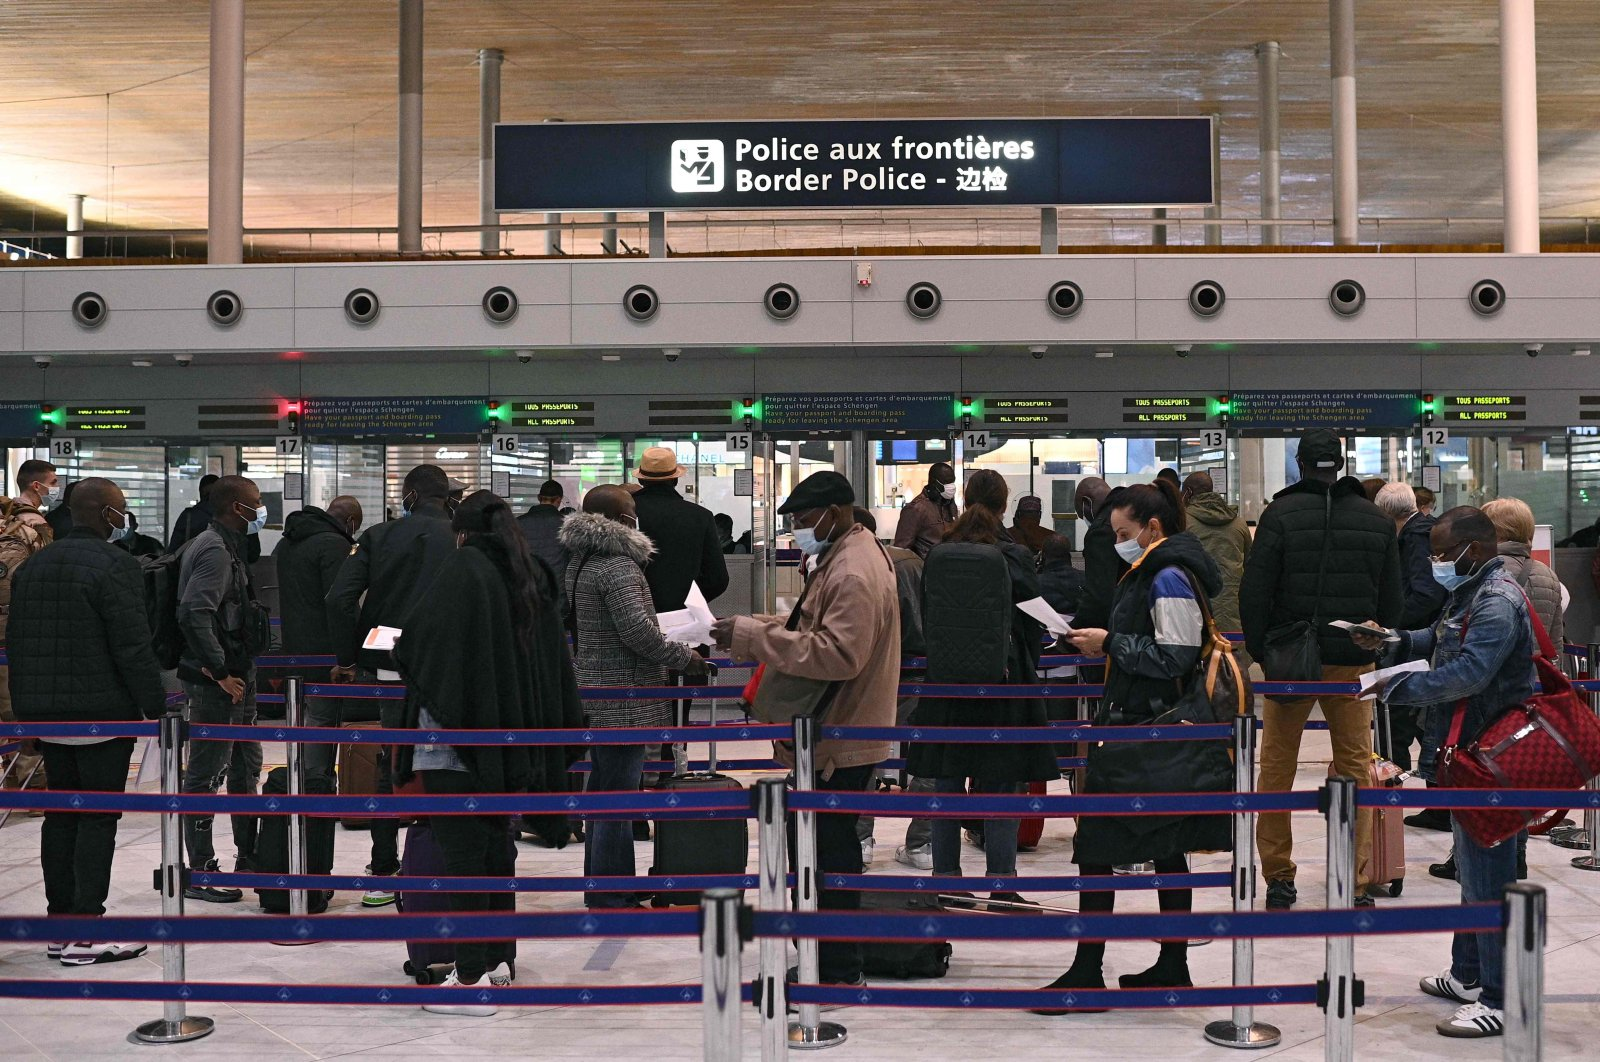 Travelers prepare their documents as they queue at the immigration desk of Roissy Charles-de-Gaulle international airport as new COVID-19 border restrictions come into effect, on Feb. 1, 2021. (AFP Photo)